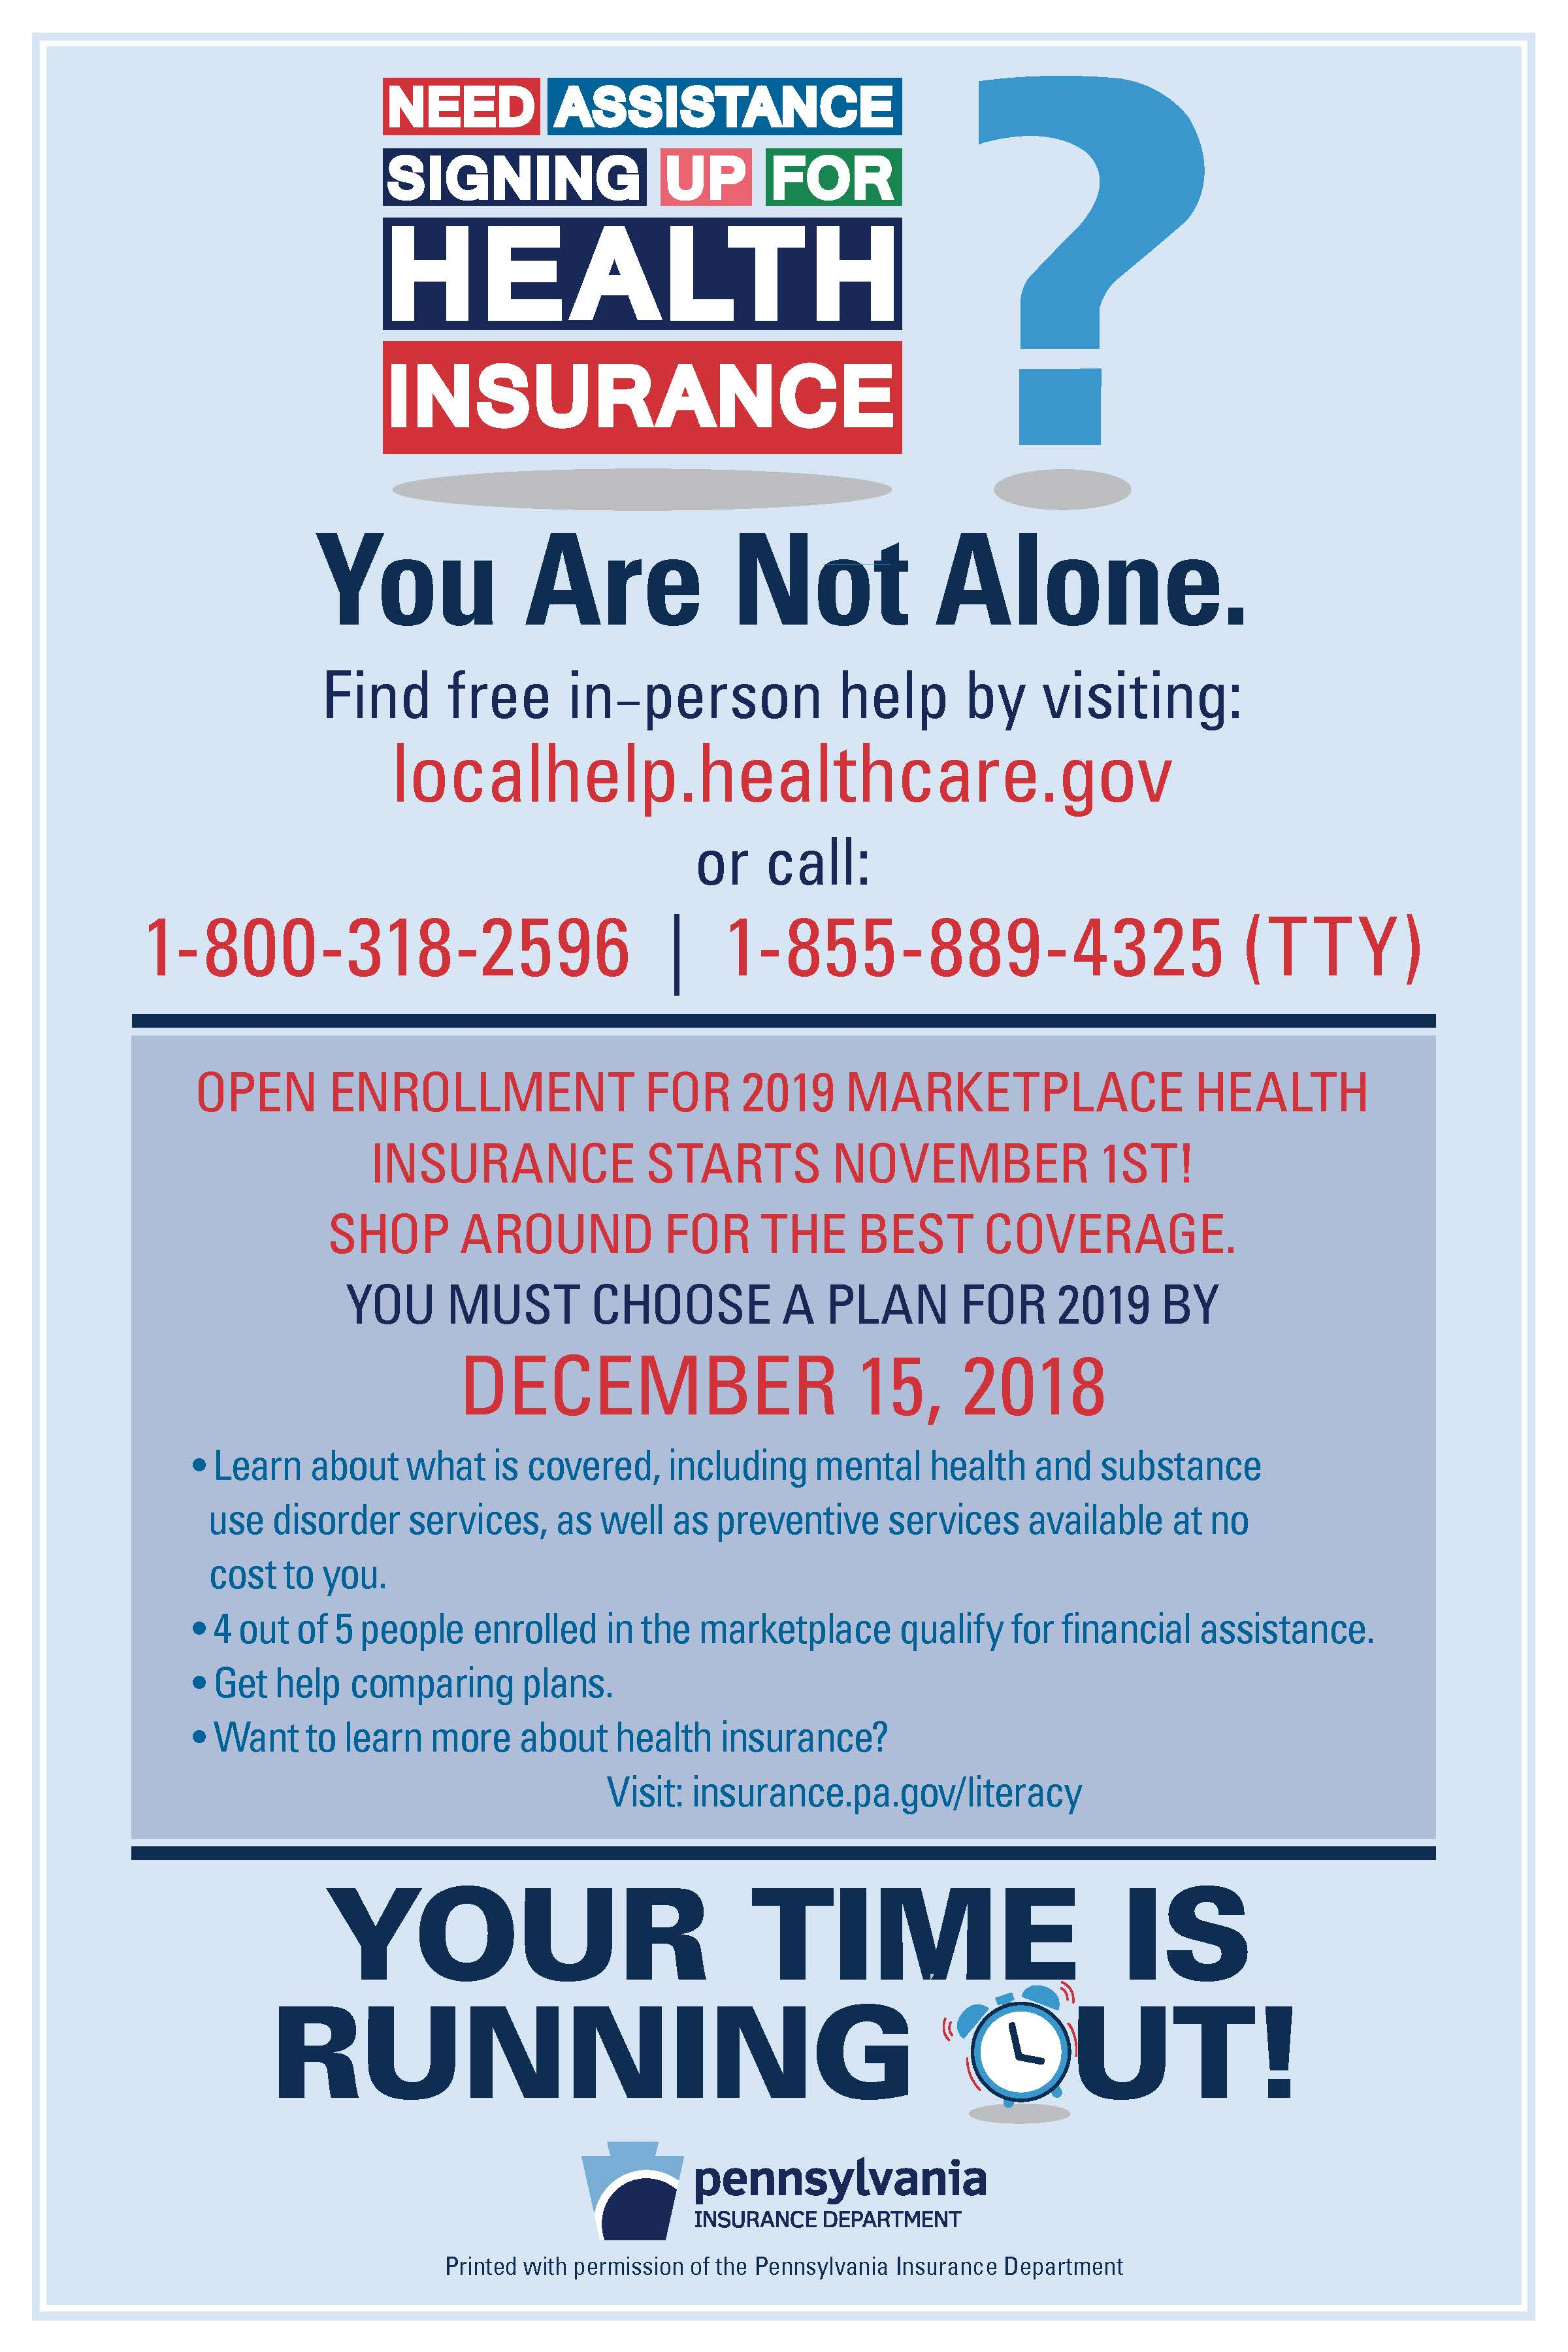 ACA Open Enrollment Resources